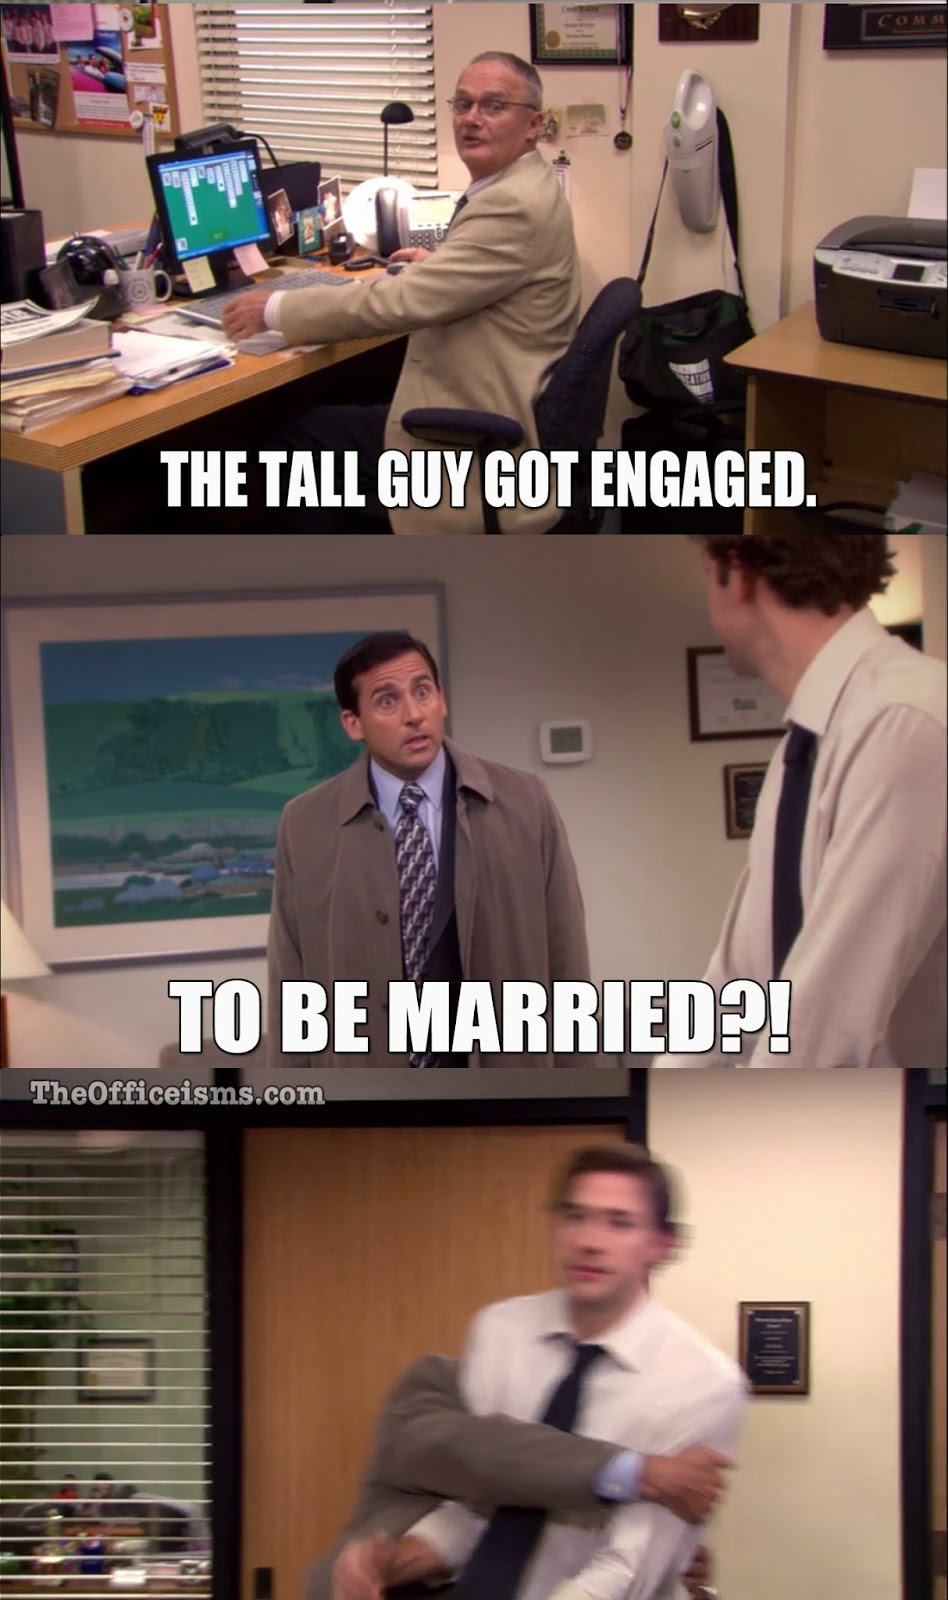 Jim and pam quotes wedding dress